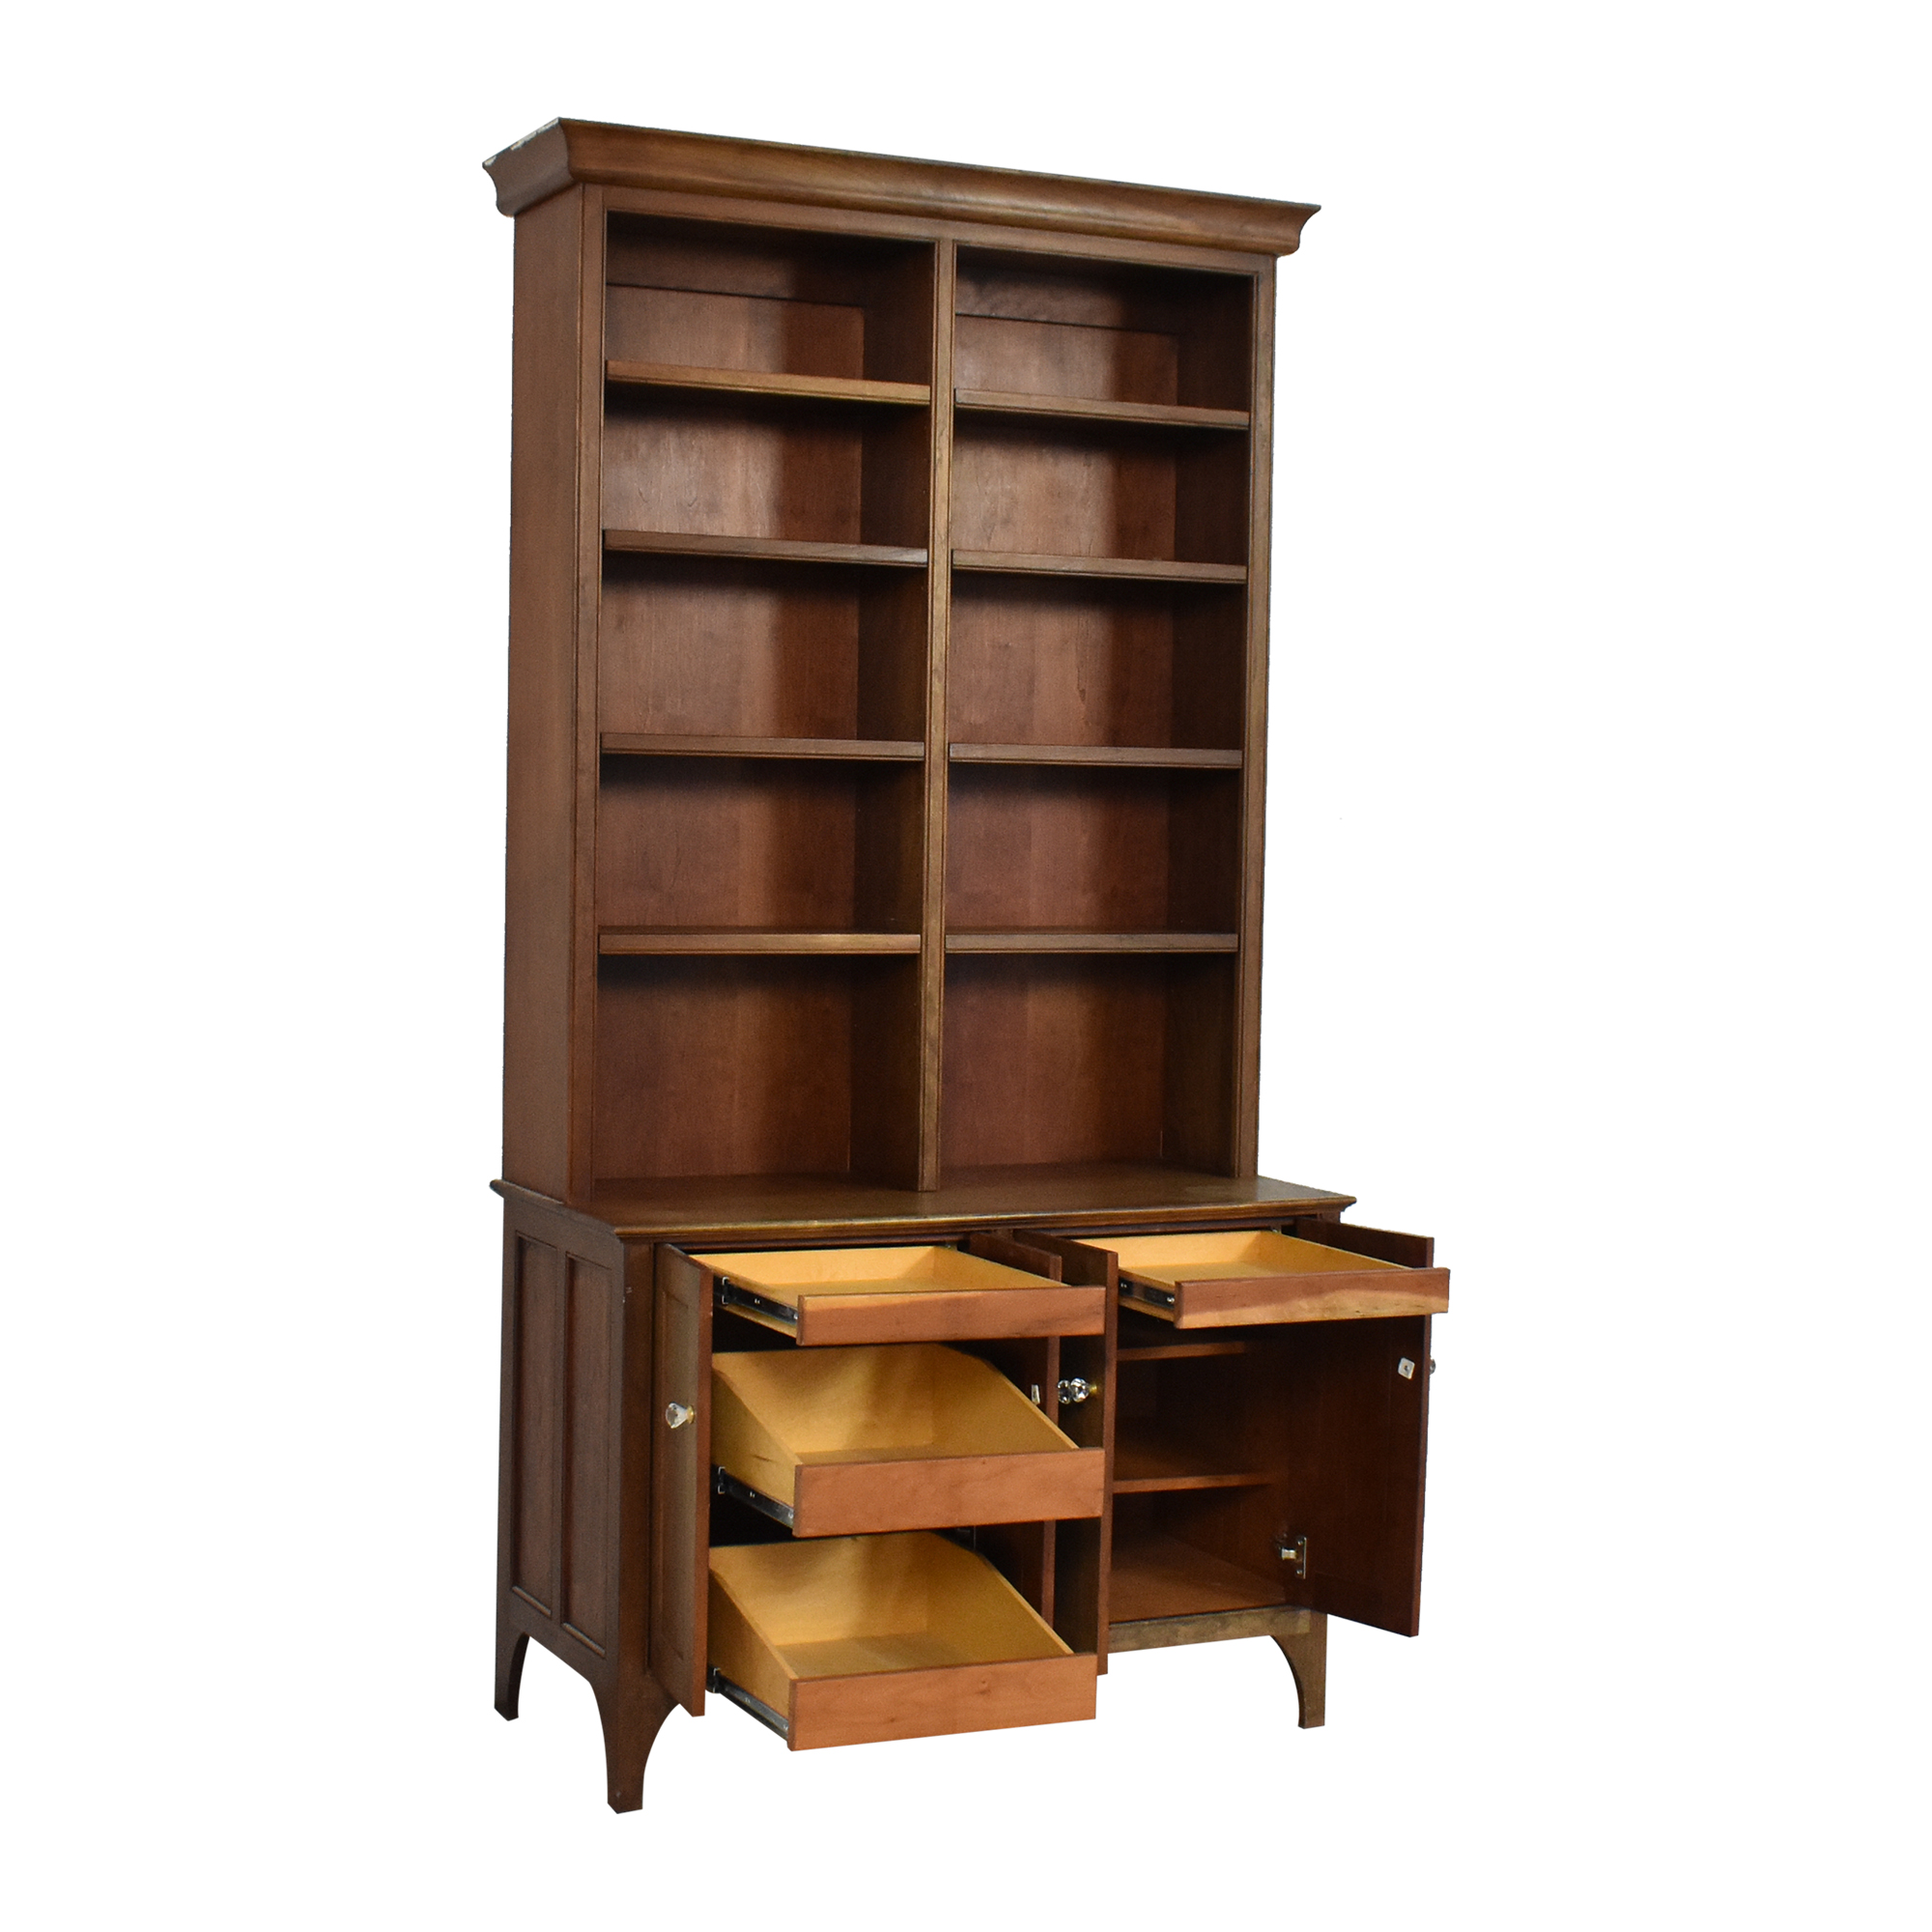 buy Vintage Cabinet with Bookshelf  Bookcases & Shelving